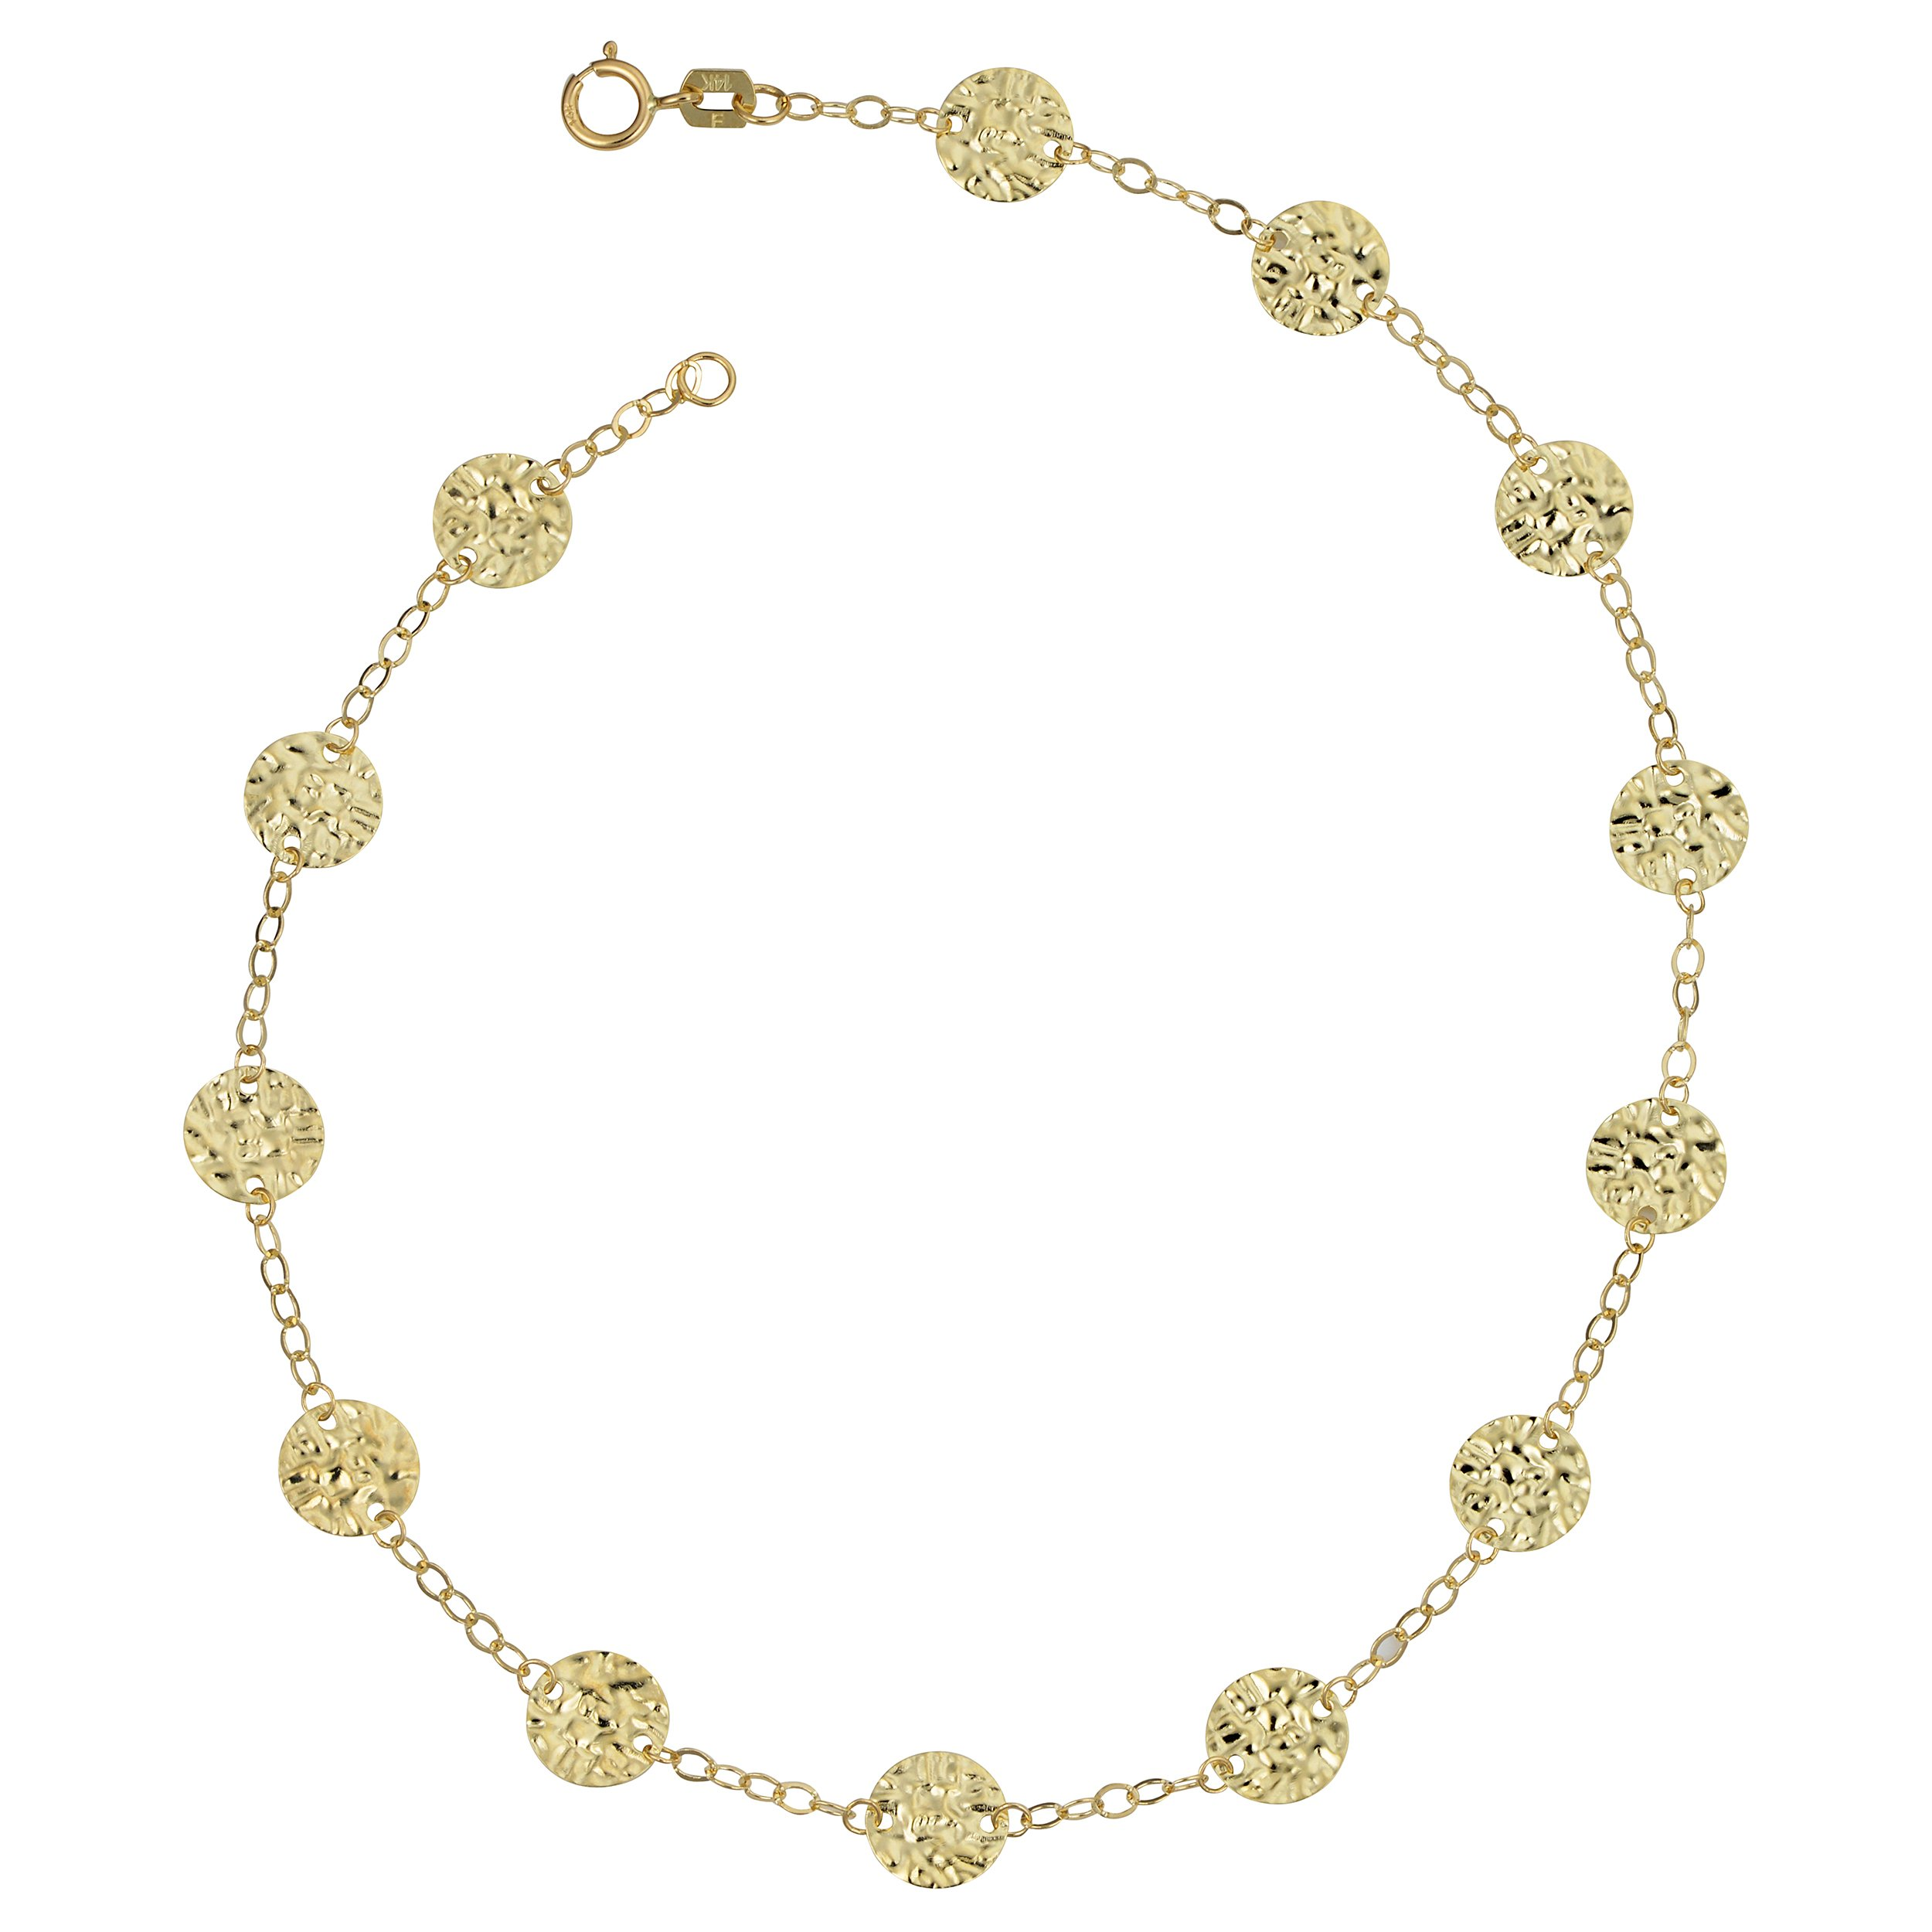 14k Yellow Gold Hammered Disc Station Anklet (10 inch)